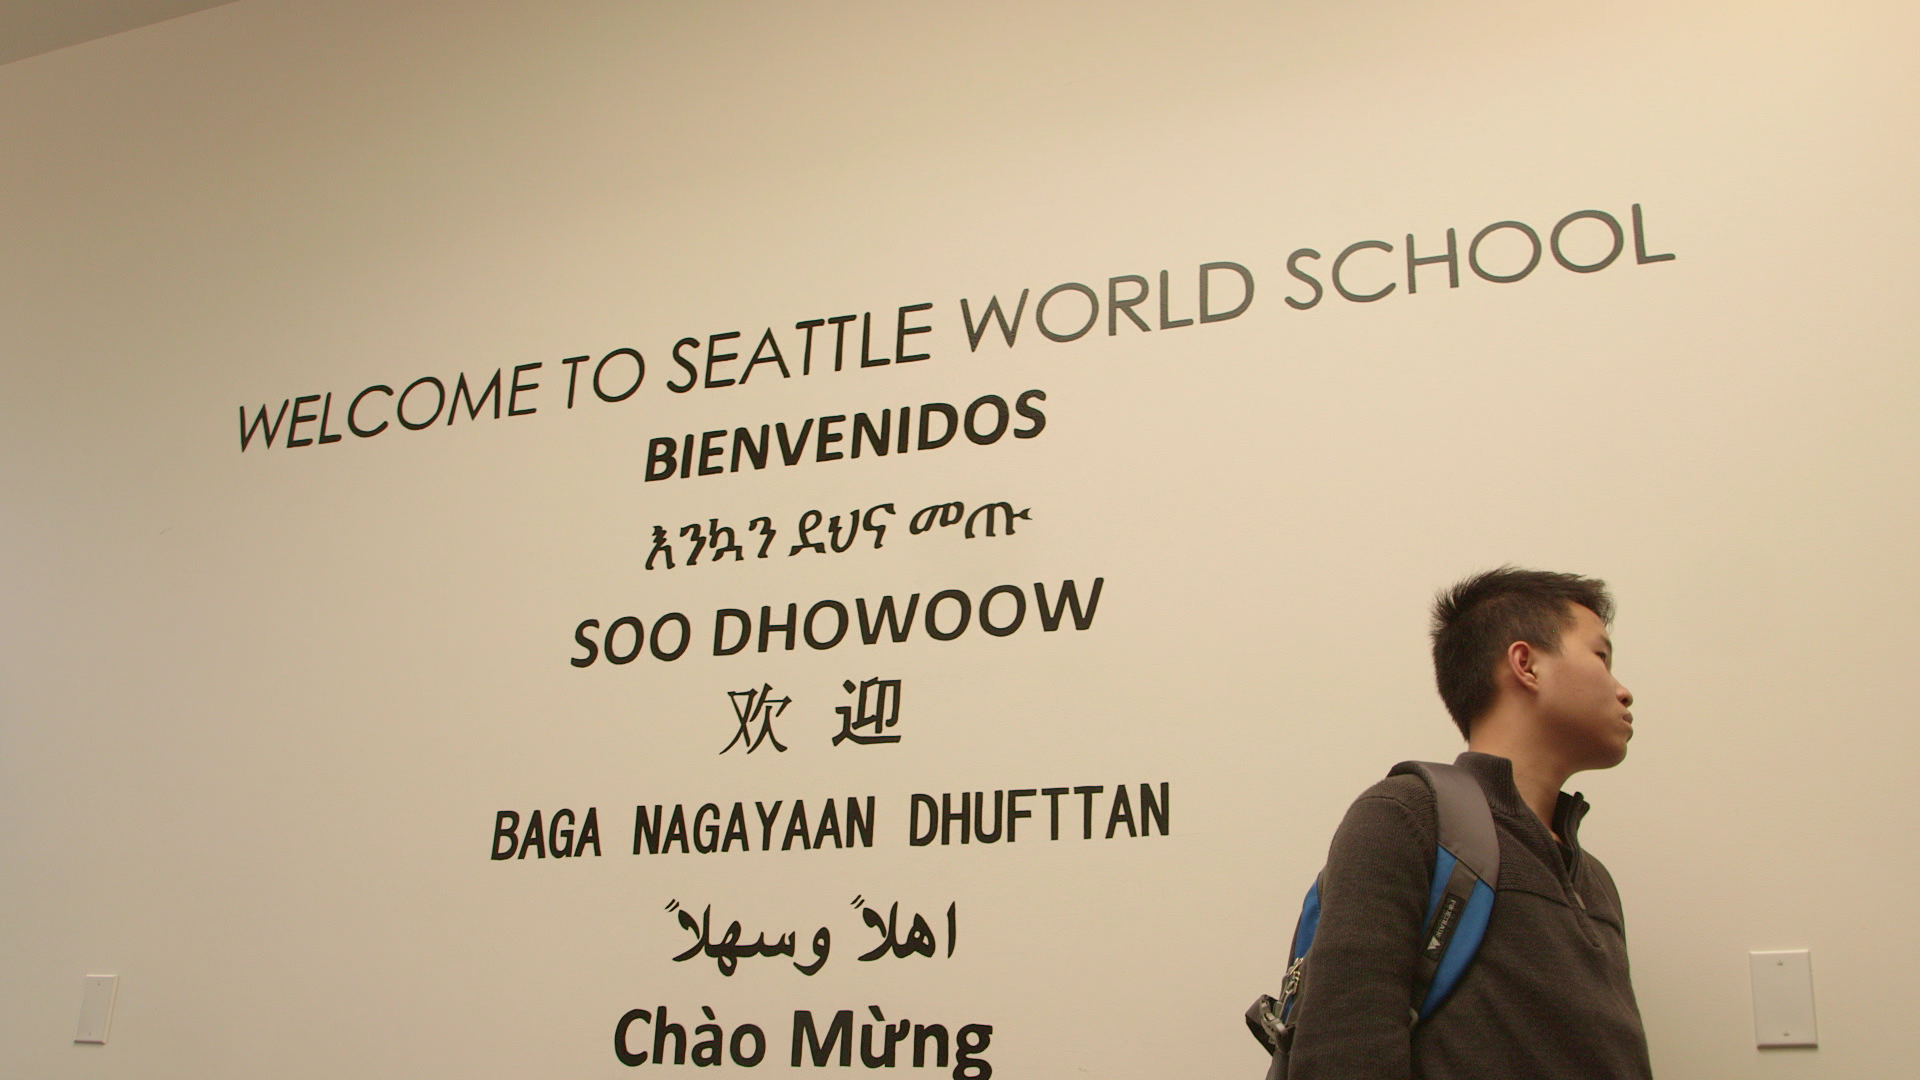 The entrance to Seattle World School. (File image from a video by Valerie Vozza for KCTS 9)